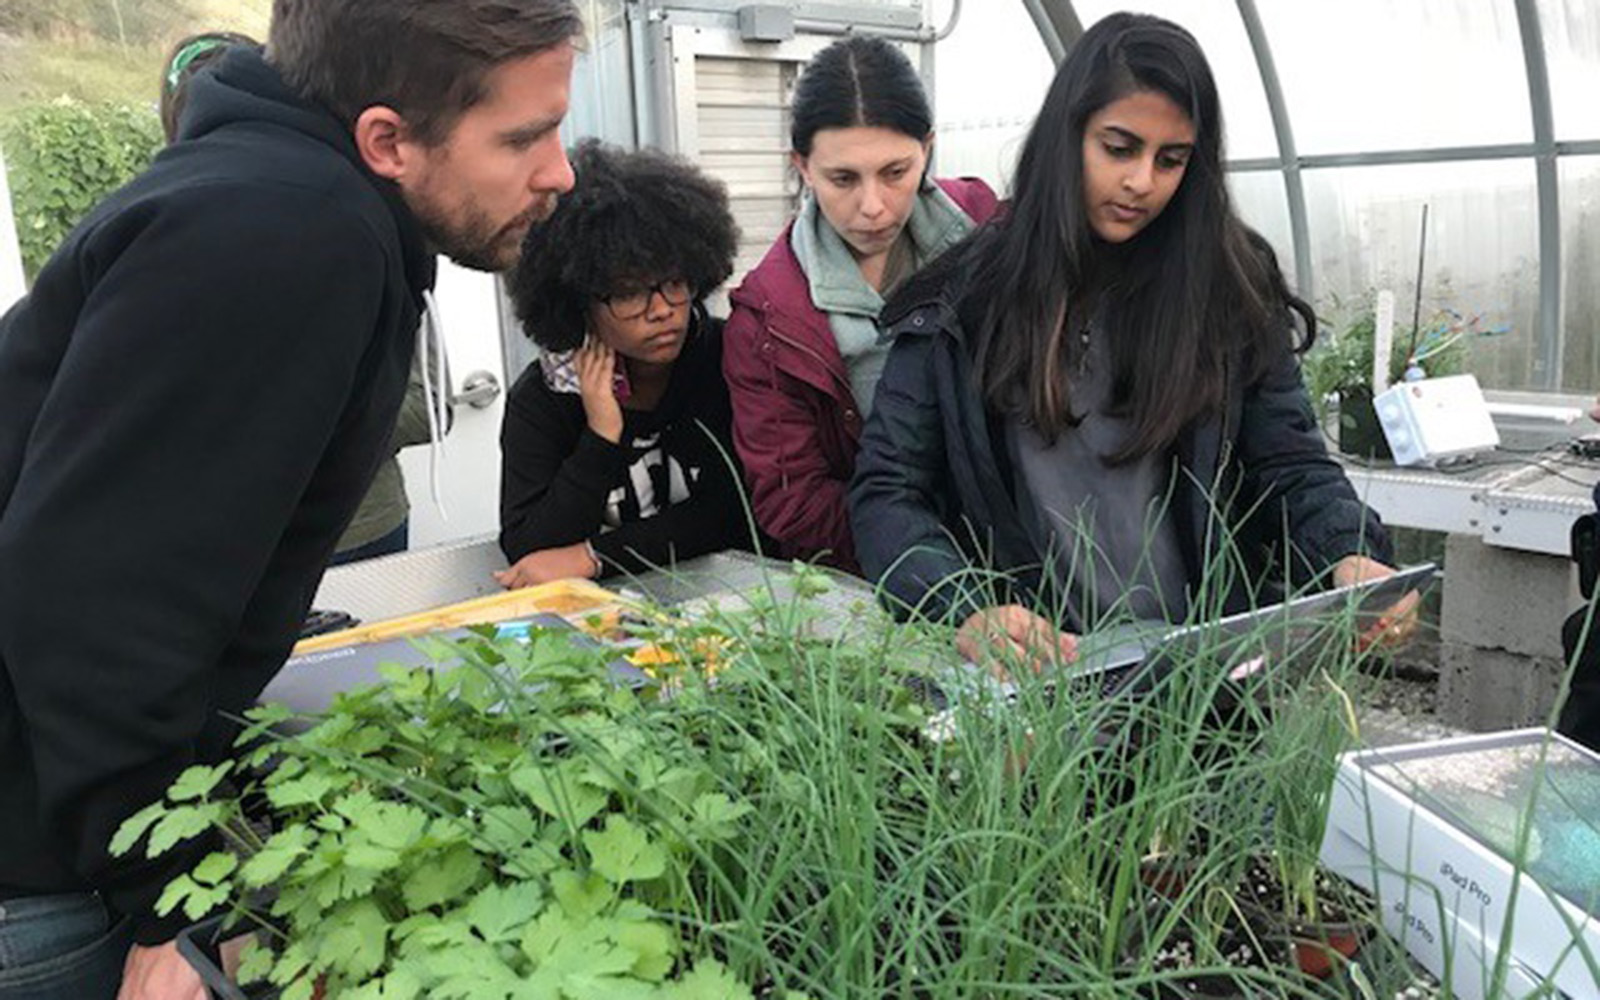 Adjunct professor Ryan O'Connor consults students enrolled in an Internet of Things course that uses emerging technology to improve plant life at UConn's Spring Valley Farm. Students, from left, are Nicole Hamilton '19 (BUS), Tara Watrous '19 (CLAS), and Radhika Kanaskar '18 (BUS). (Claire Hall/UConn School of Business)